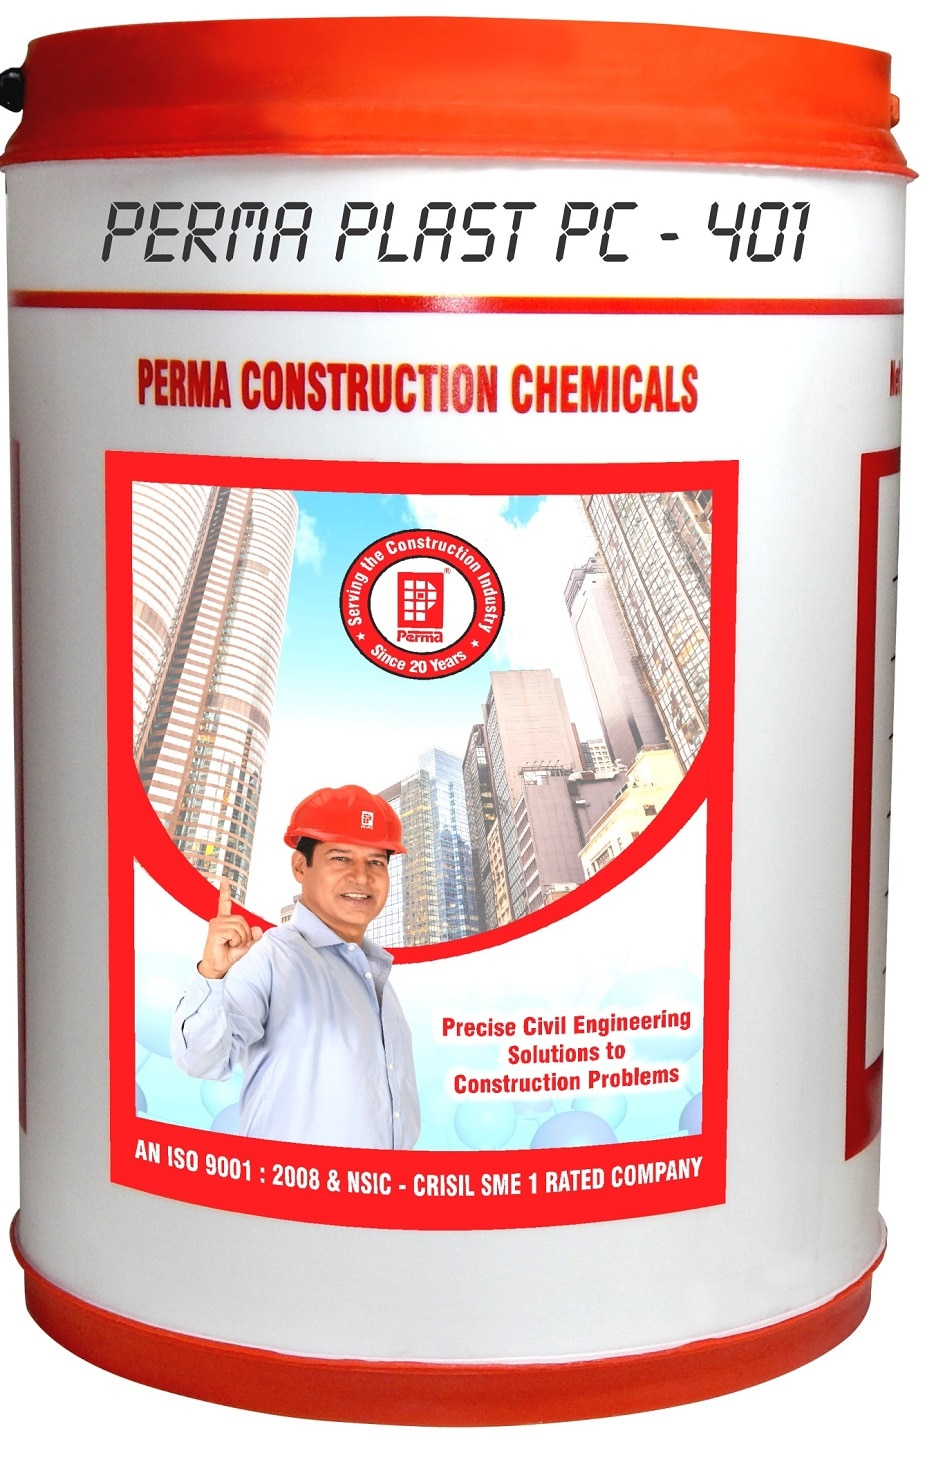 Super Plasticizers Concrete Admixture  Perma Plast Pc – 401 High Range Hyper Plasticising Superior Quality Admixture For High Quality Concrete Based On Poly Carboxylic Ether.  Perma Plast PC – 401 is Super Plasticizers Concrete Admixture and based on poly carboxylic Ether and hyper plasticising sulphonated synthetic polymers. It may be dispensed at dosages varying between 0.5 to 2 percent by weight of cement depending upon type of concrete required.  PRIMARY USES  Perma Plast PC – 401 is recommended in all high grade concrete which has a cement content of over 400 kg/m3. Perma Plast PC – 401 is recommended in hot weather concreting where workability retention over long periods is required. Perma Plast PC – 401 is recommended in marine structures, pile foundations; bridge girders, caissons, high rise structures and such structures where quality of concrete is of prime importance. Perma Plast PC – 401 is also recommended where very high initial and ultimate strengths are expected.  ADVANTAGES  Hyper plasticizing action of this product produces free flowing concrete with most kinds of aggregates and varying fine aggregates. Perma Plast PC – 401 maintains the workability over long periods. Perma Plast PC – 401 helps in production of high quality concrete which exhibits superior compressive, tensile and flexural strengths and exhibits excellent resistance to chloride and sulphide attacks on concrete. Perma Plast PC – 401 is compatible with all types of cements including pozzolanic and fly ash / slag cements. Perma Plast PC – 401 is specially suggested in all high strength concrete and in construction of marine structures, pile foundations and bridge girders. Perma Plast PC 401 enables production of dense impermeable and fair finish concrete.